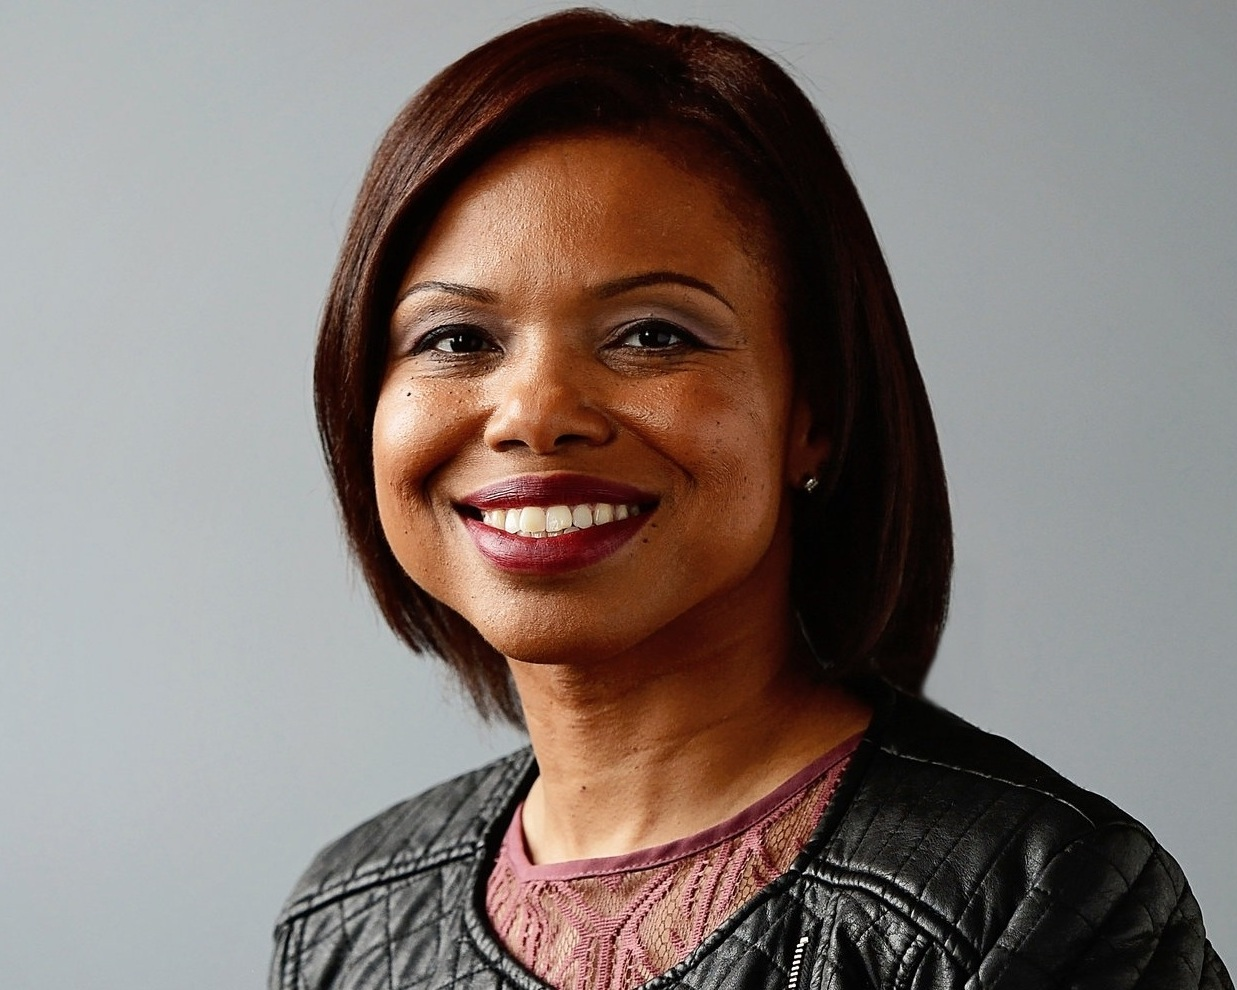 Sonya Pryor-Jones - Chief Implementation Officer for the Fab Foundation and founder of The Fab House project, a Cleveland, Ohio neighborhood-based Fab Lab dedicated to resident driven change and bridging the tech divide,